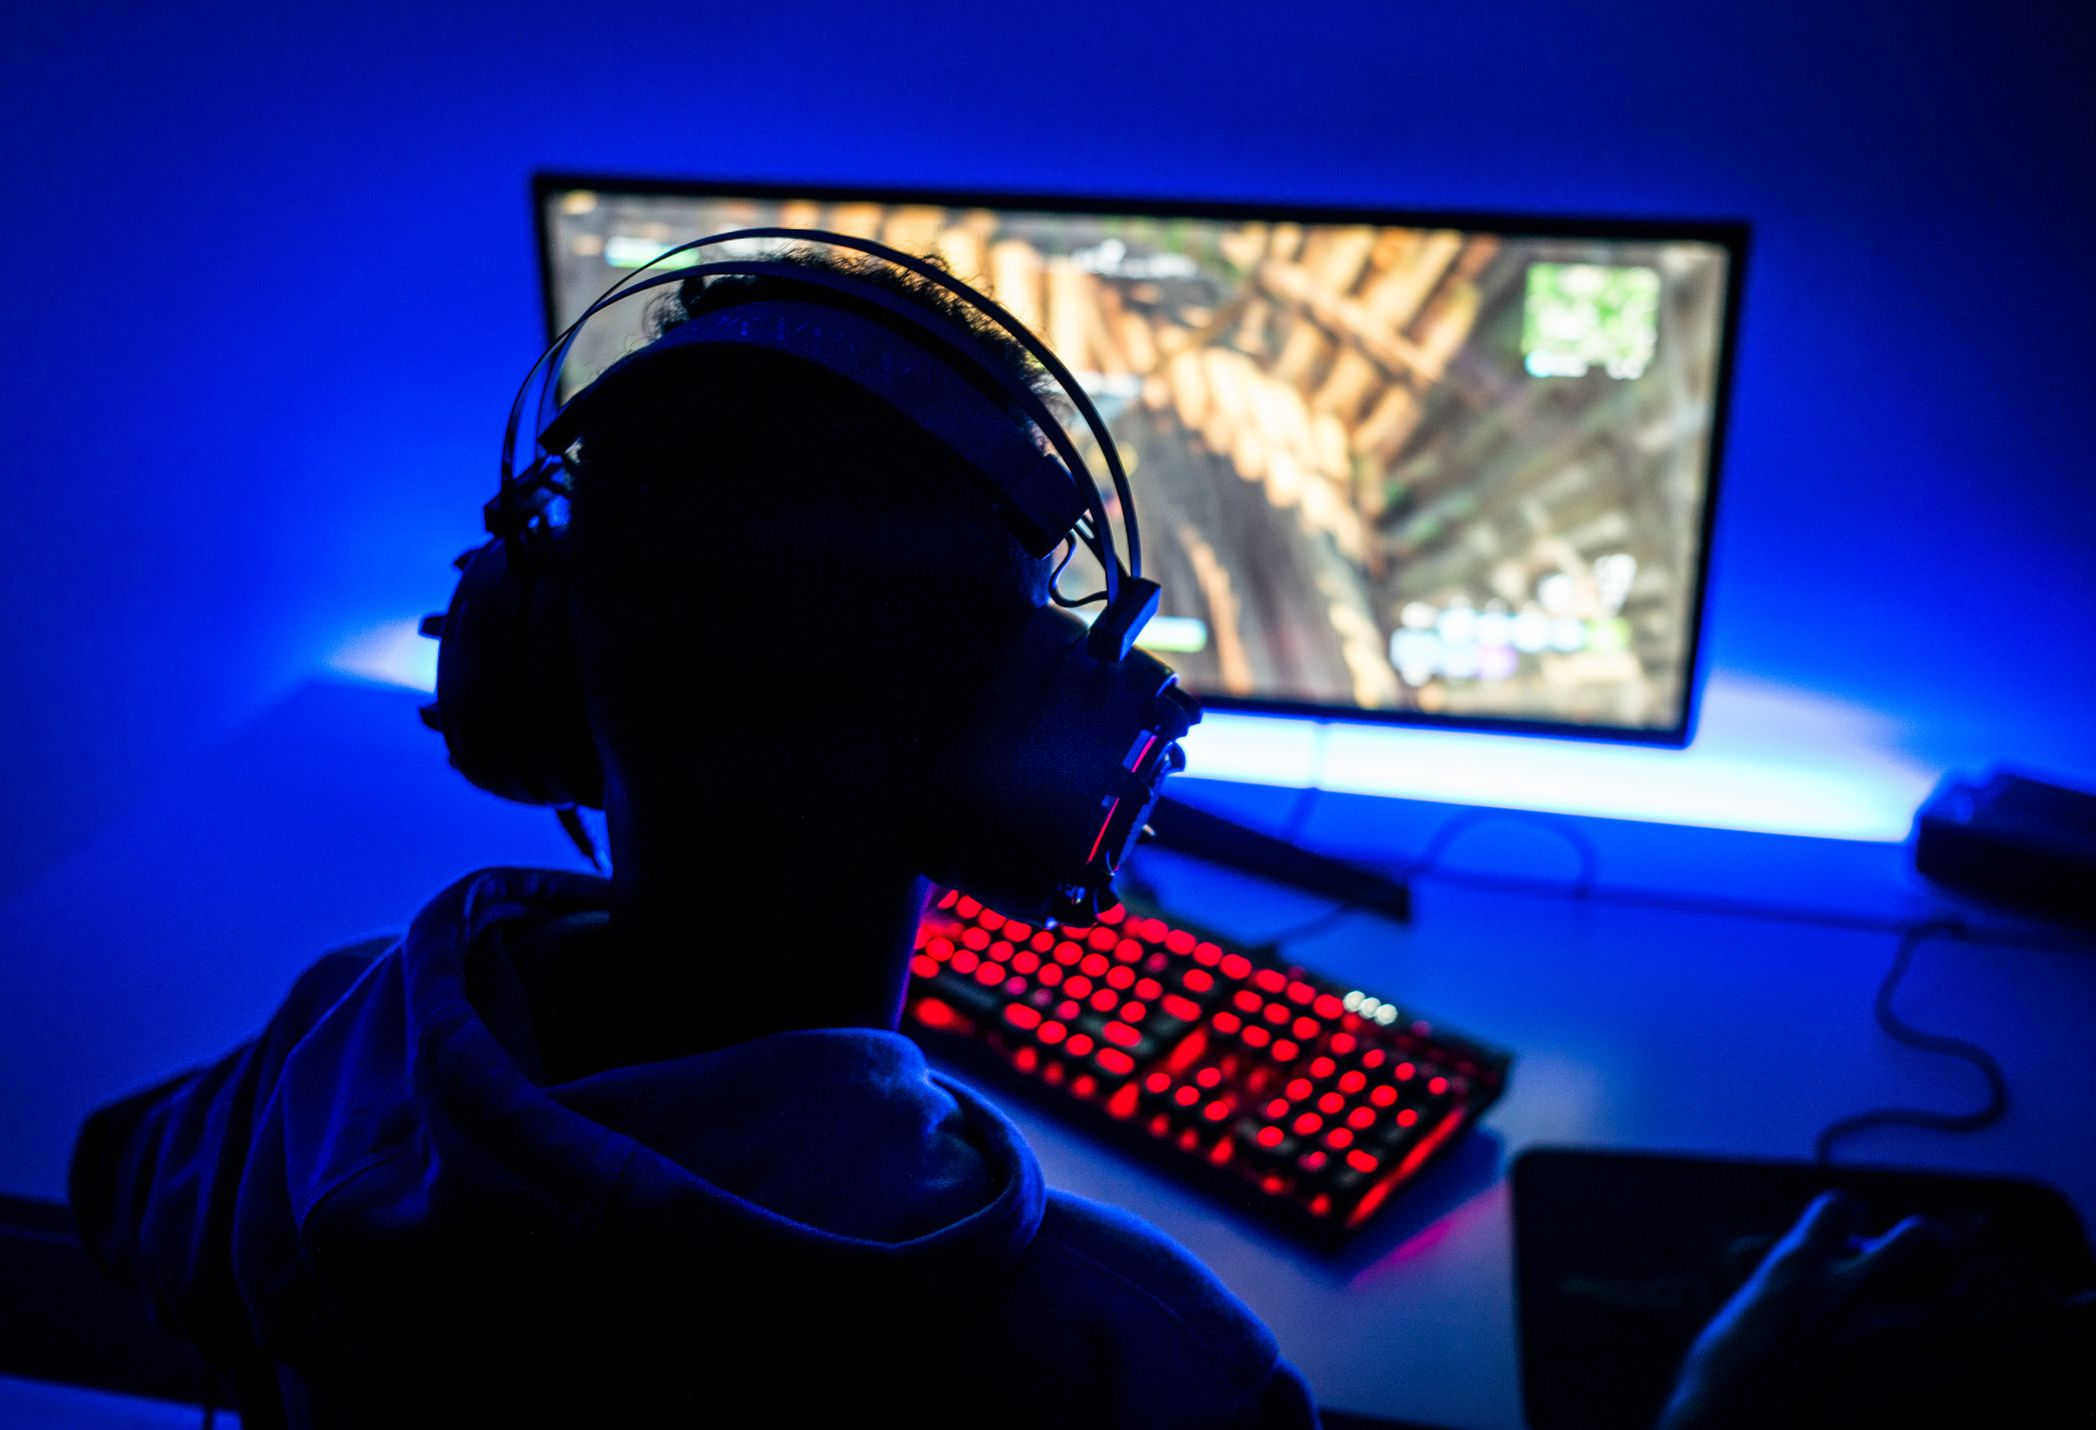 A boy playing video games on his gaming setup